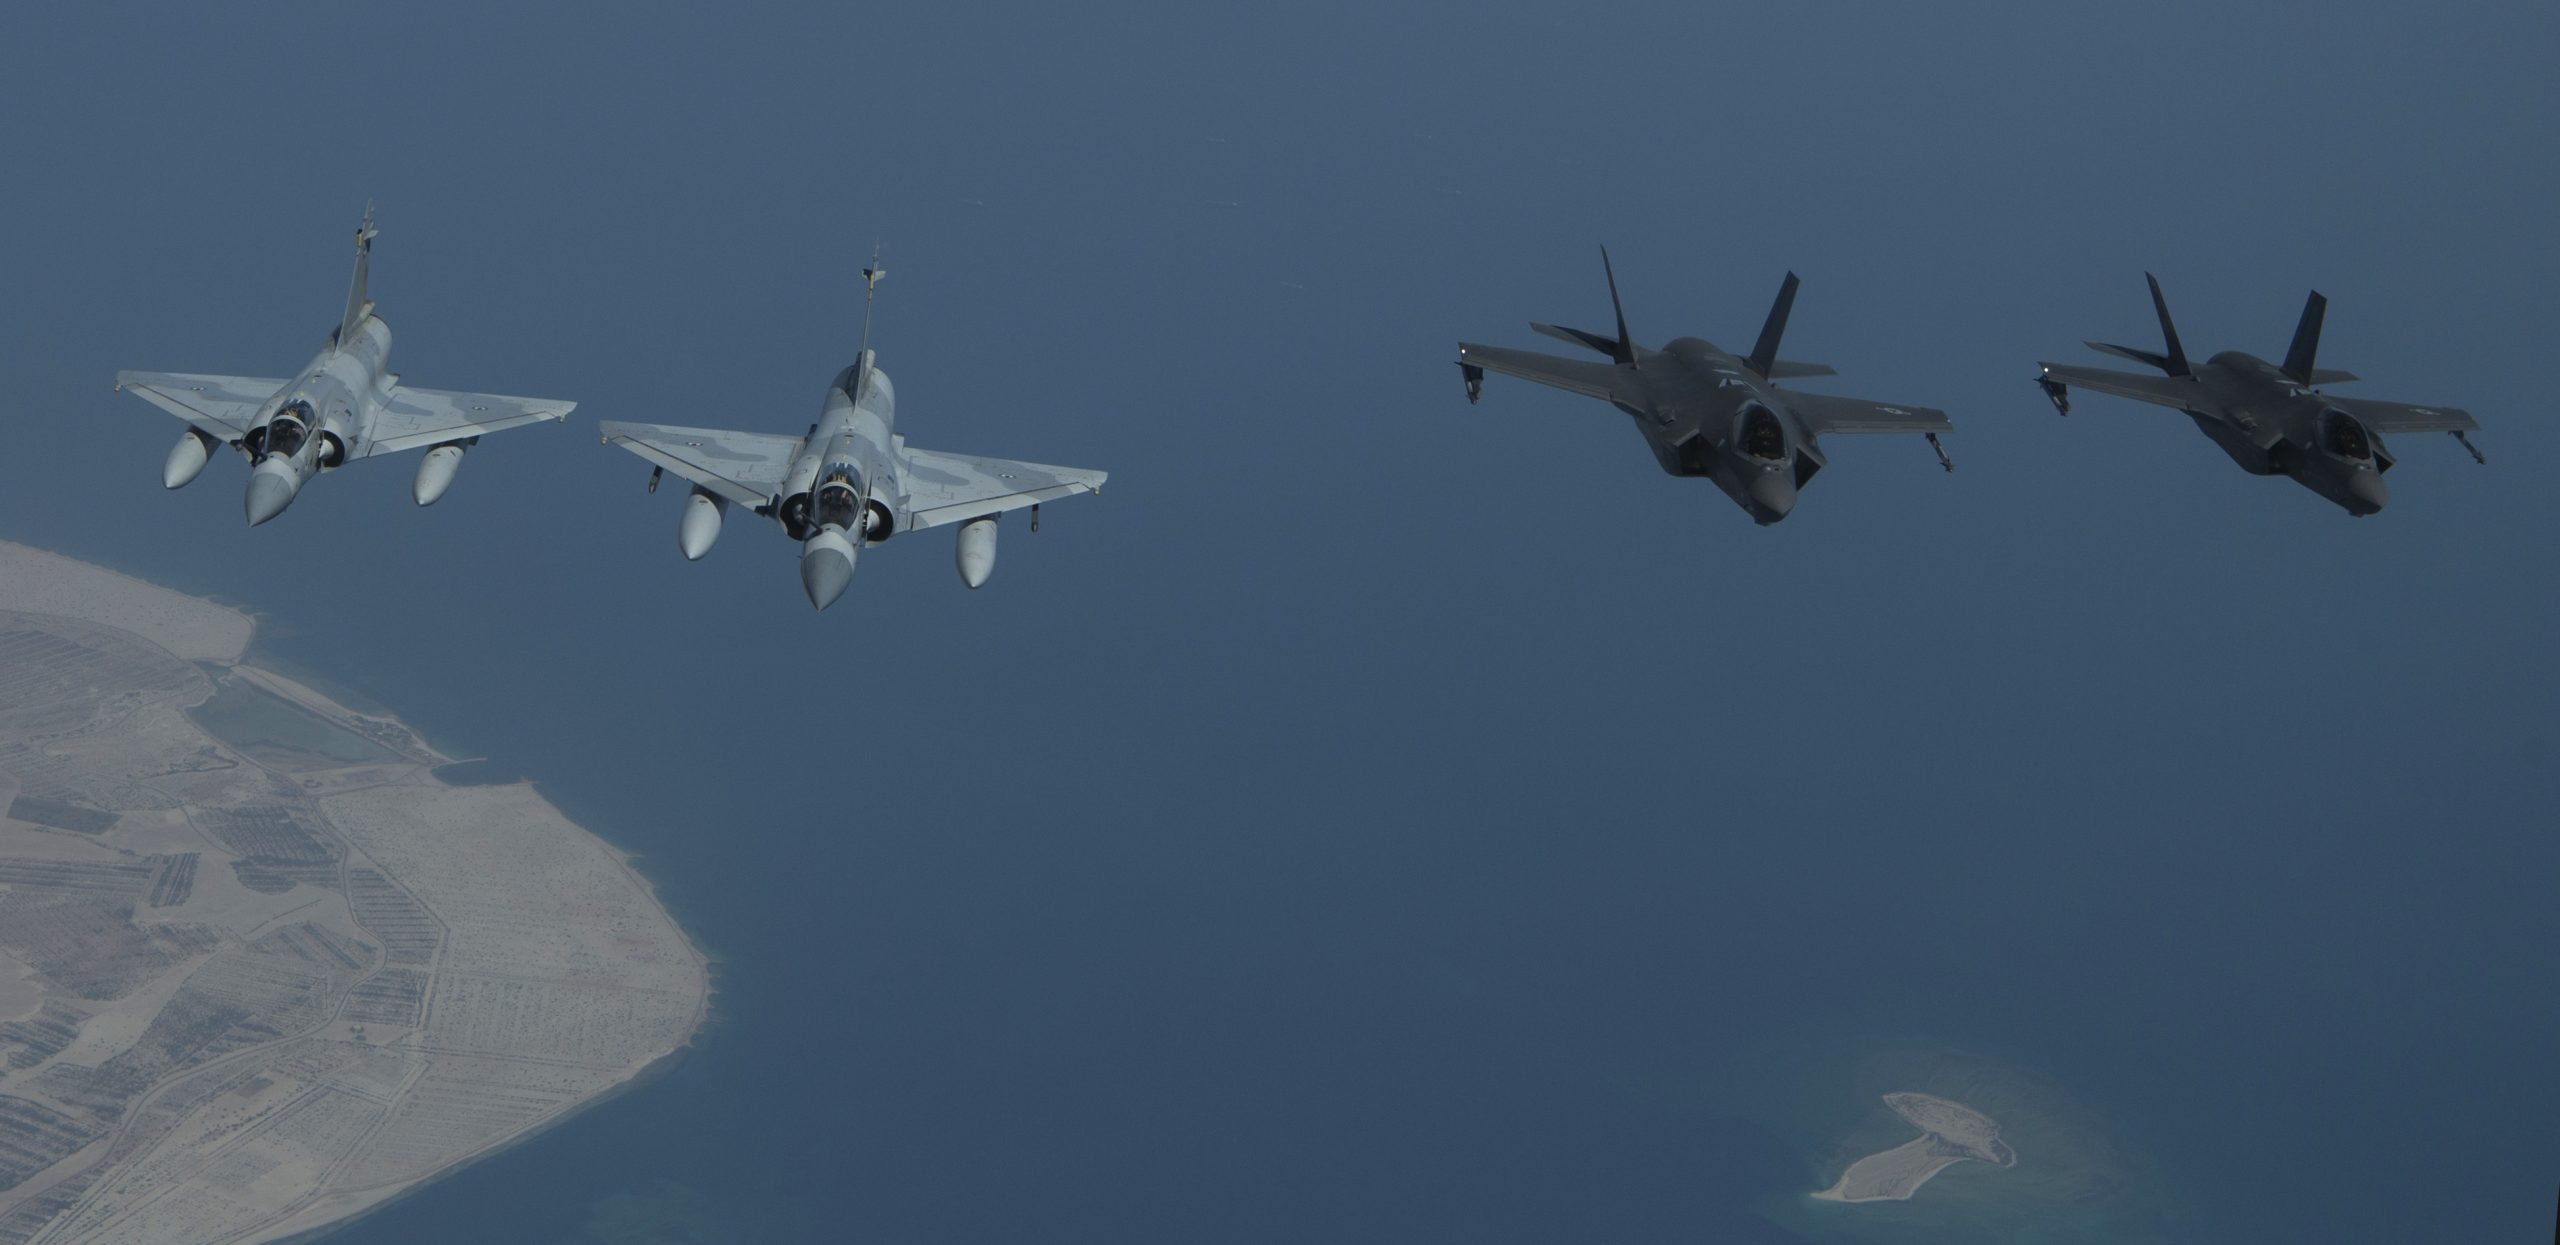 A Final Bit Of Profit: UAE Approved Deal To Purchase 50 F-35 Fighter Jets, 18 MQ-9 Reaper Drones: Reuters report